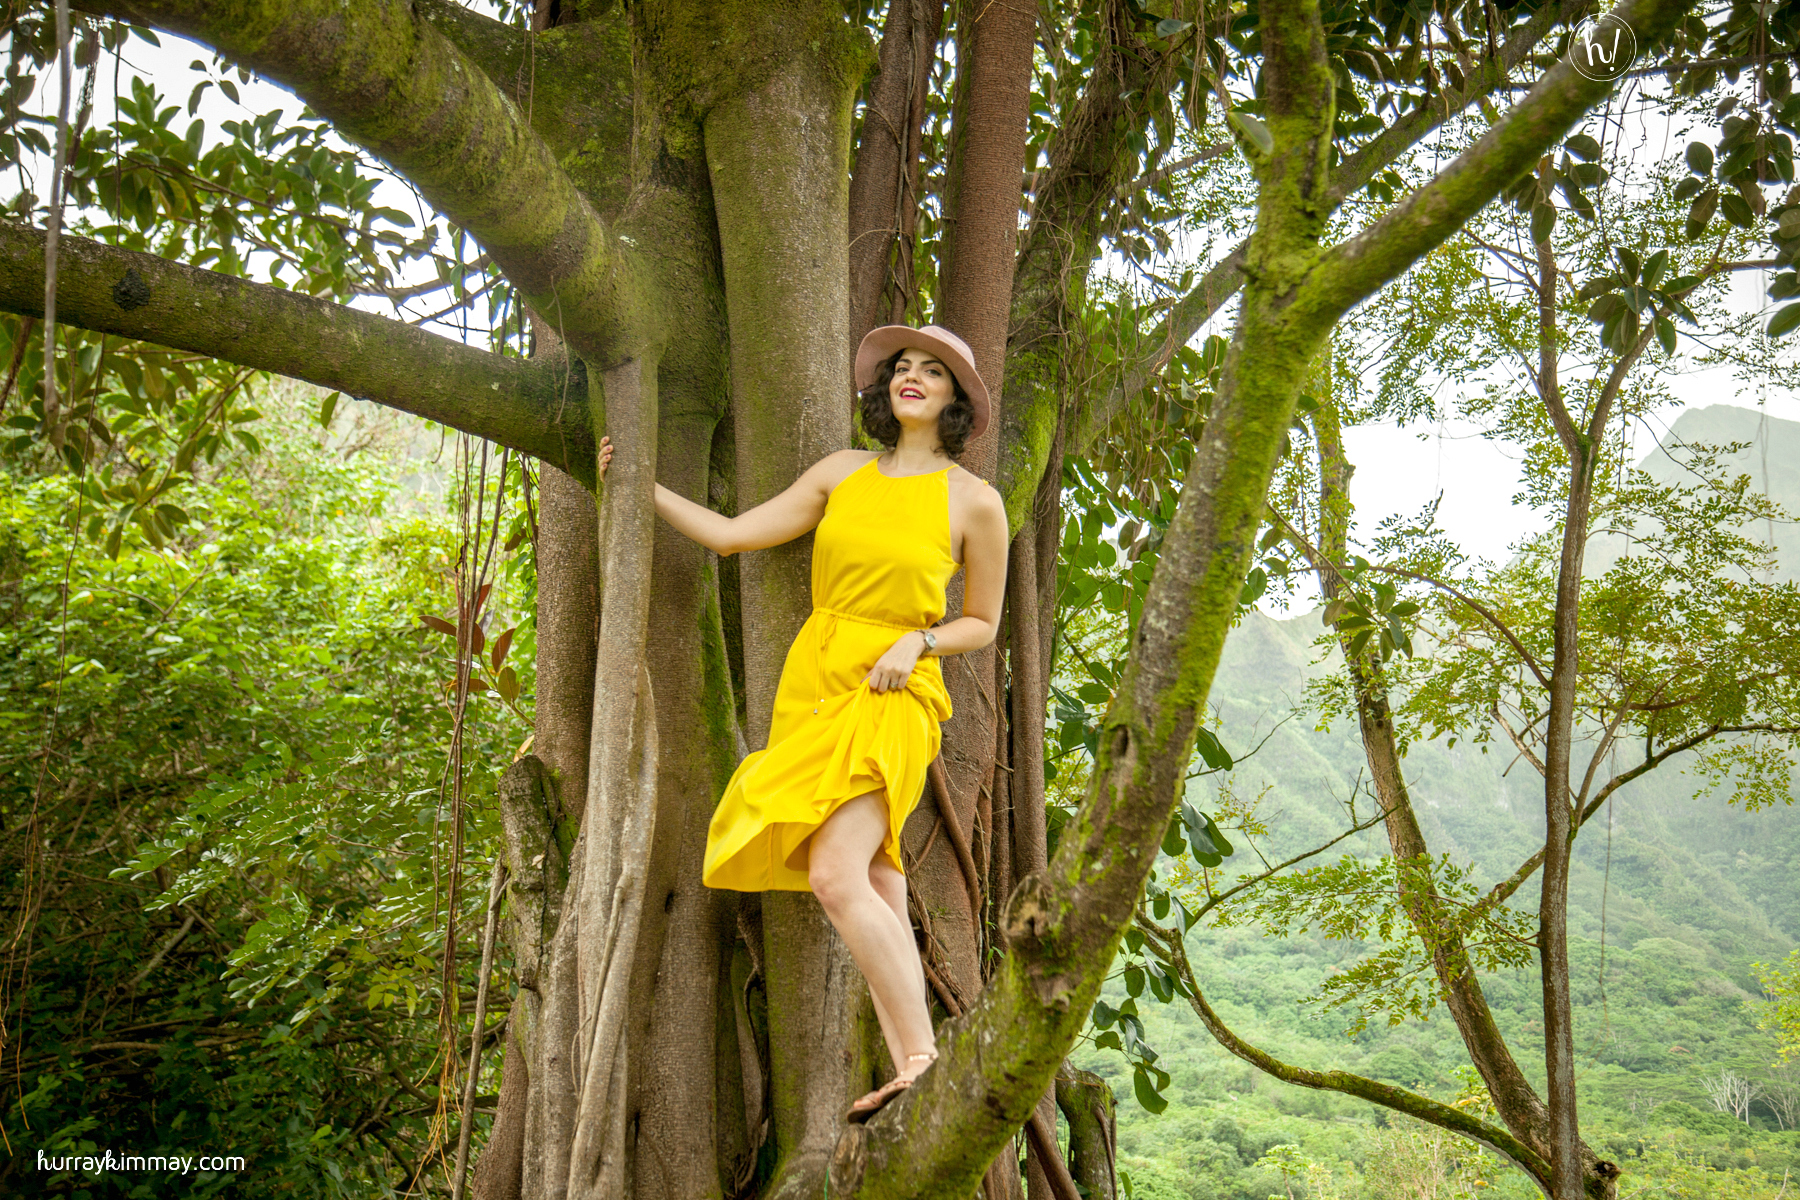 Find your courage to take a risk and learn more lessons from trees in Kimmay's new blog